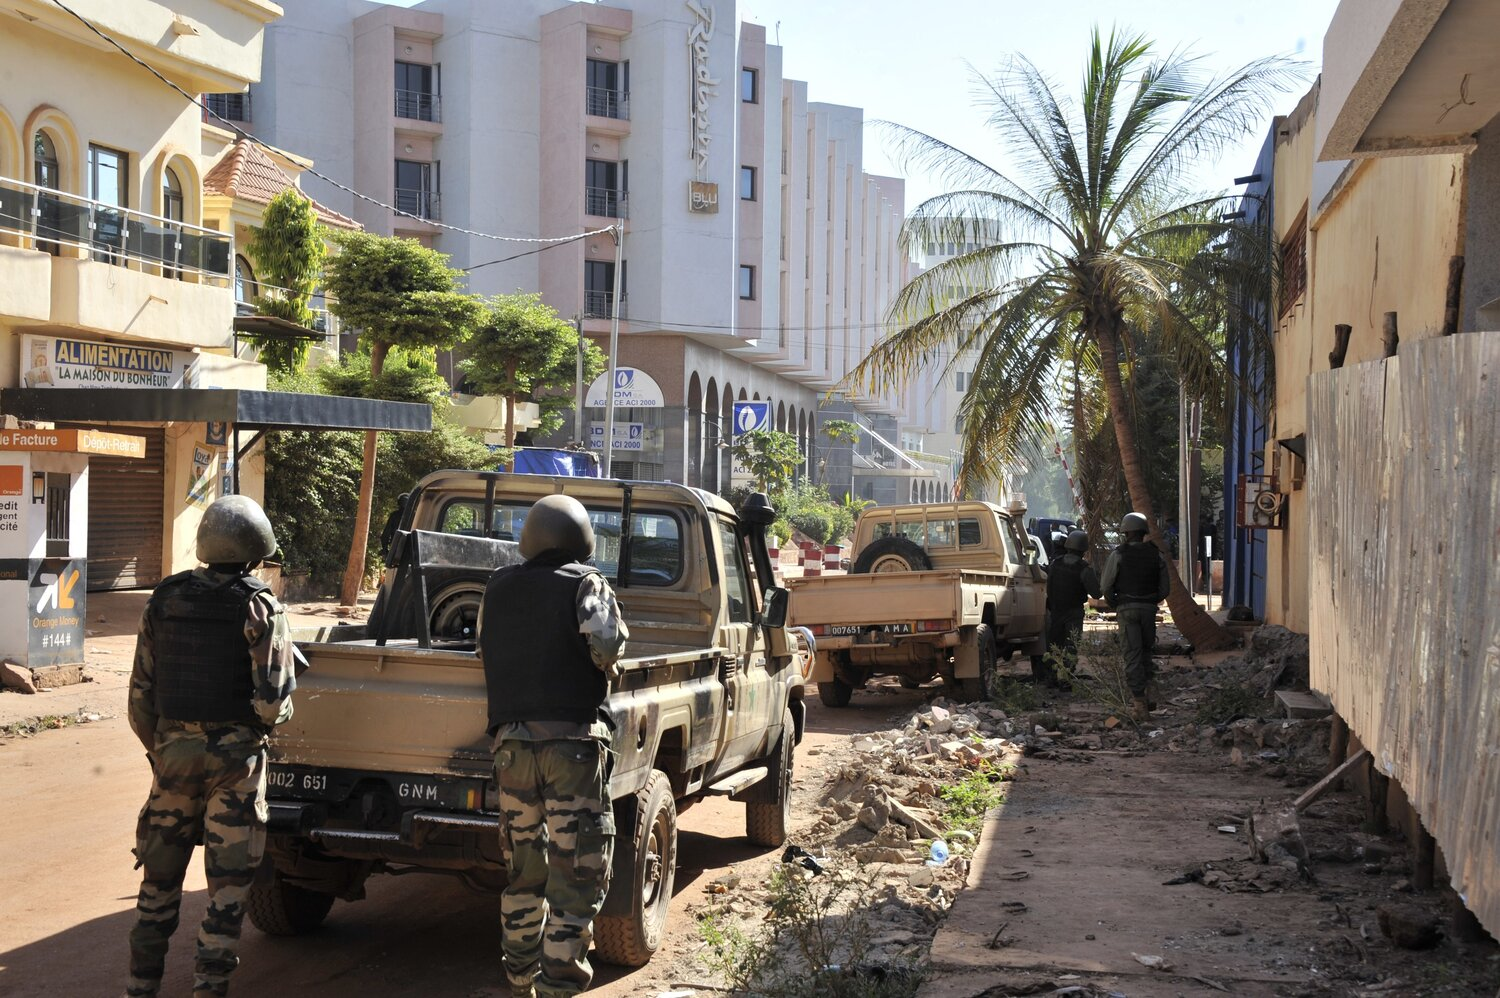 Malian troops take position outside the Radisson Blu hotel in Bamako on Friday. Gunmen went on a shooting rampage at the hotel in the capital of Bamako, seizing 170 guests and staff. (Habibou Kouyate/AFP/Getty Images)